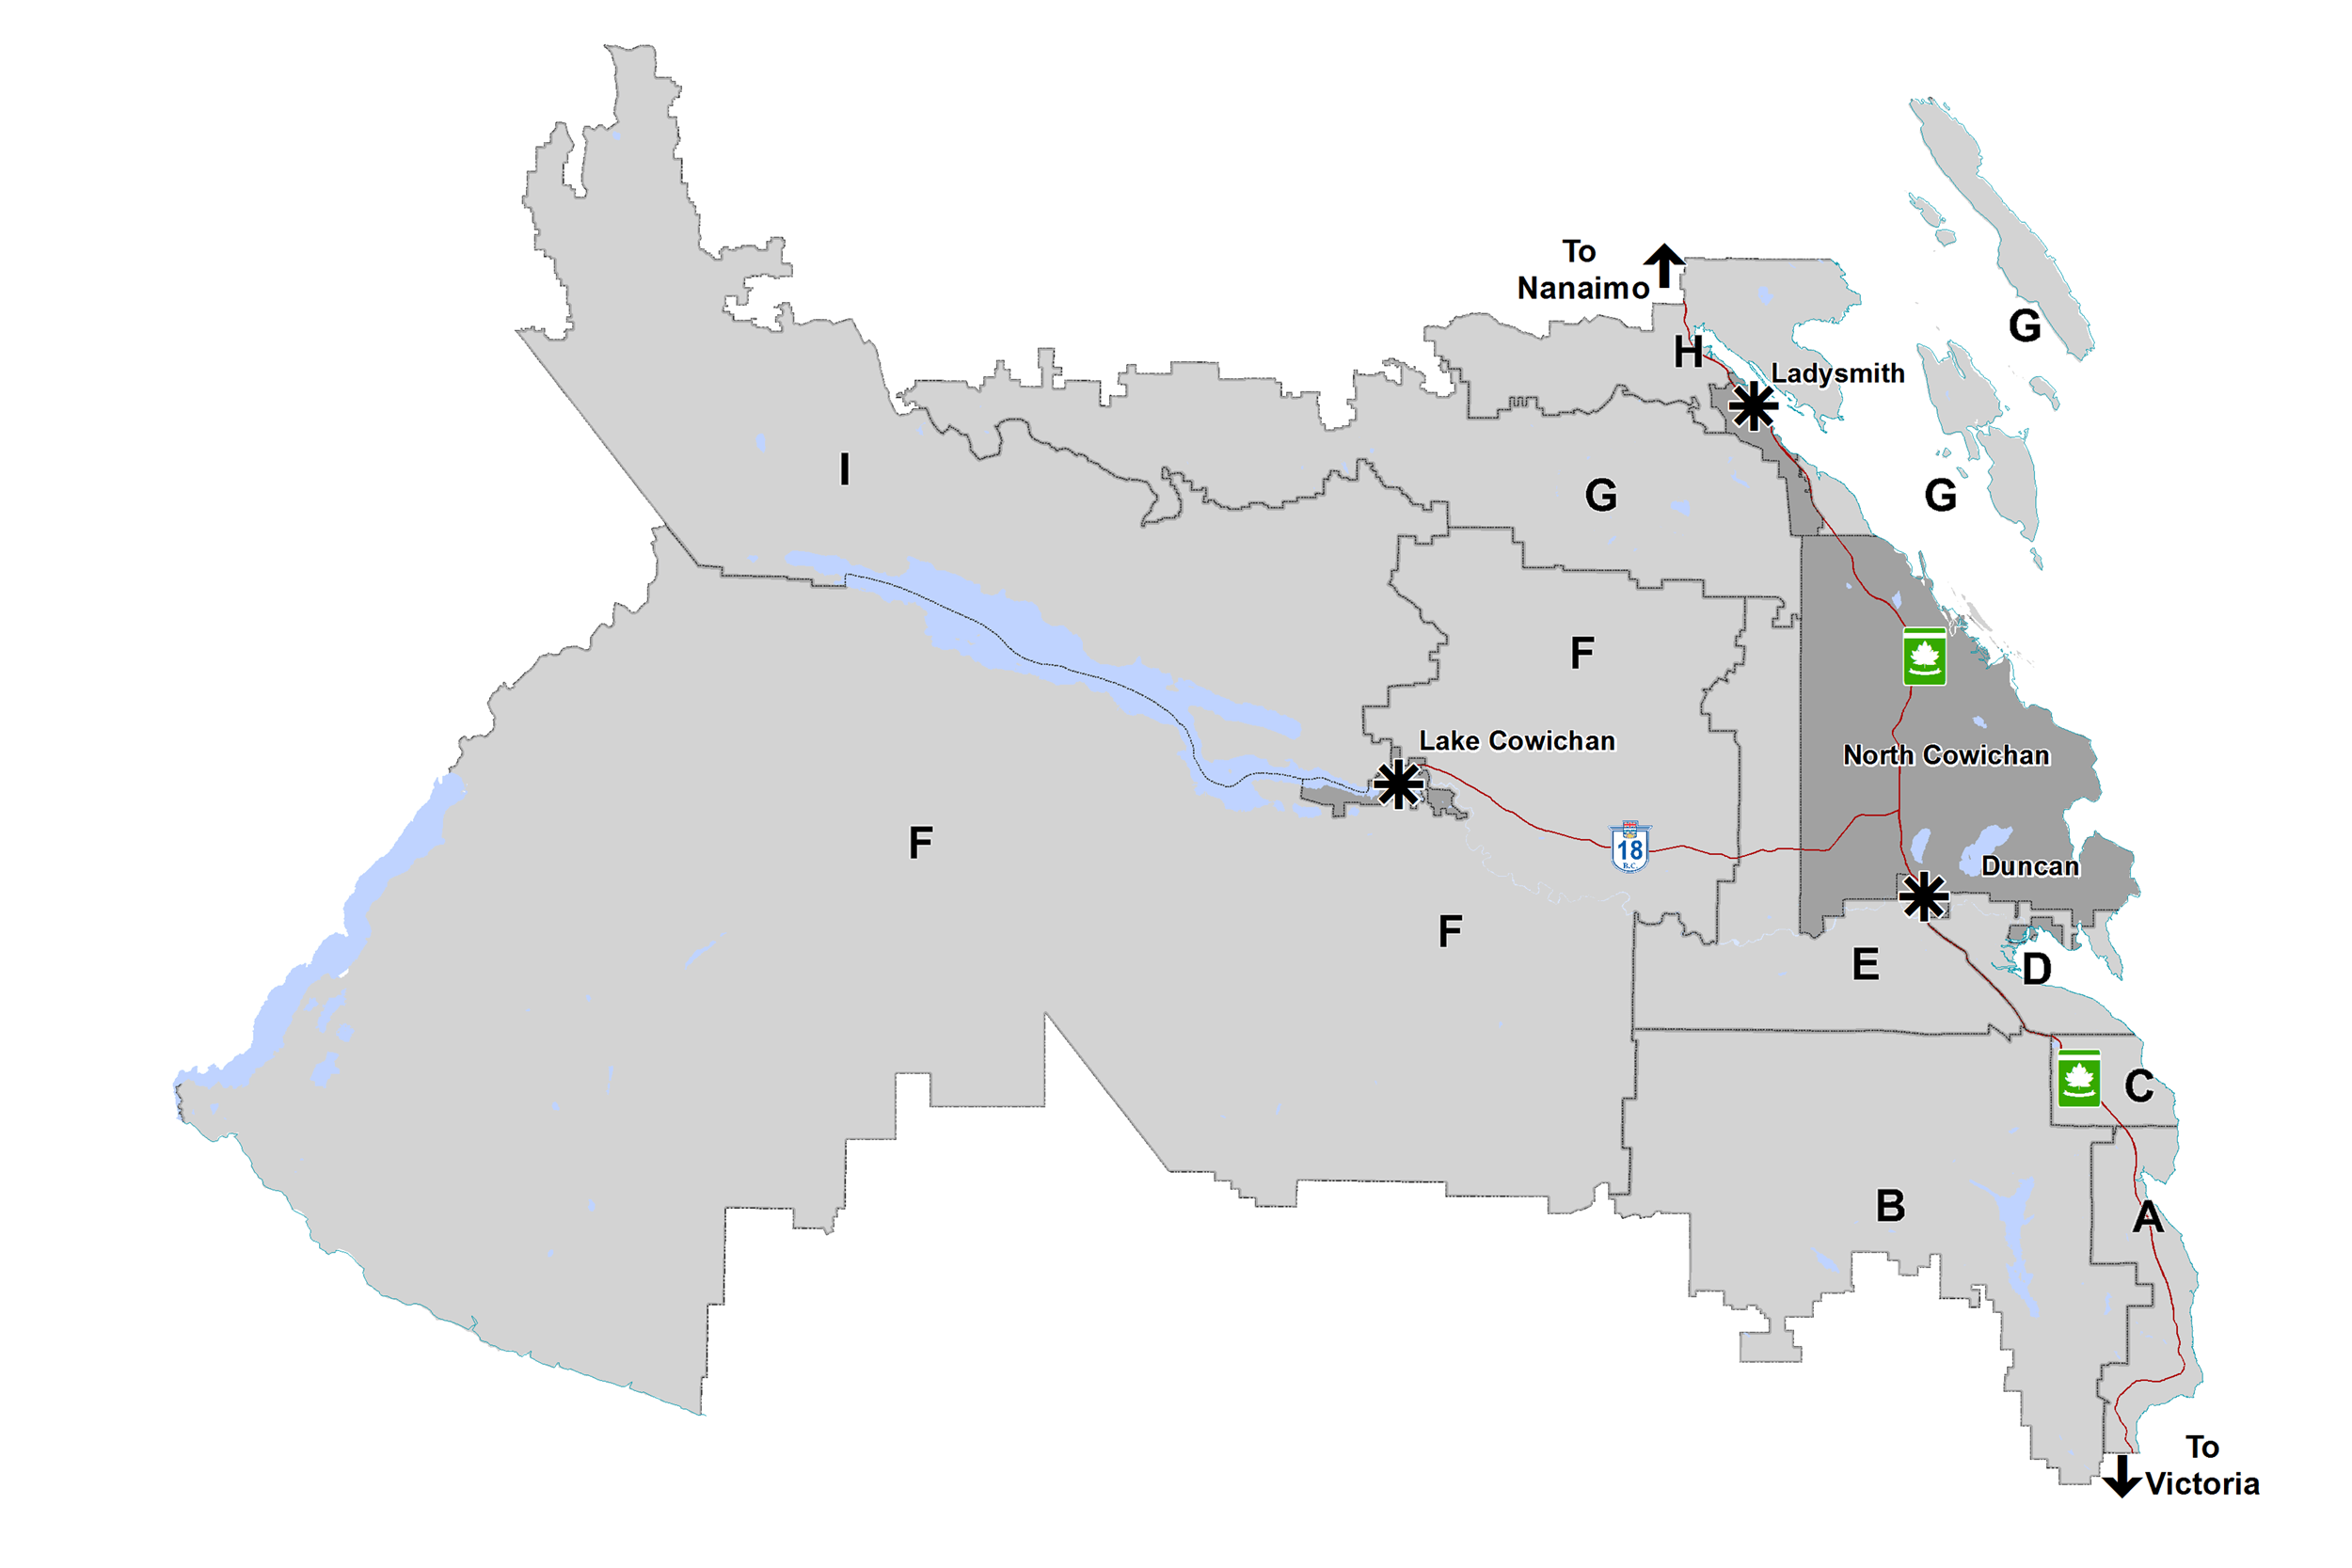 An overview map of the Cowichan Region.